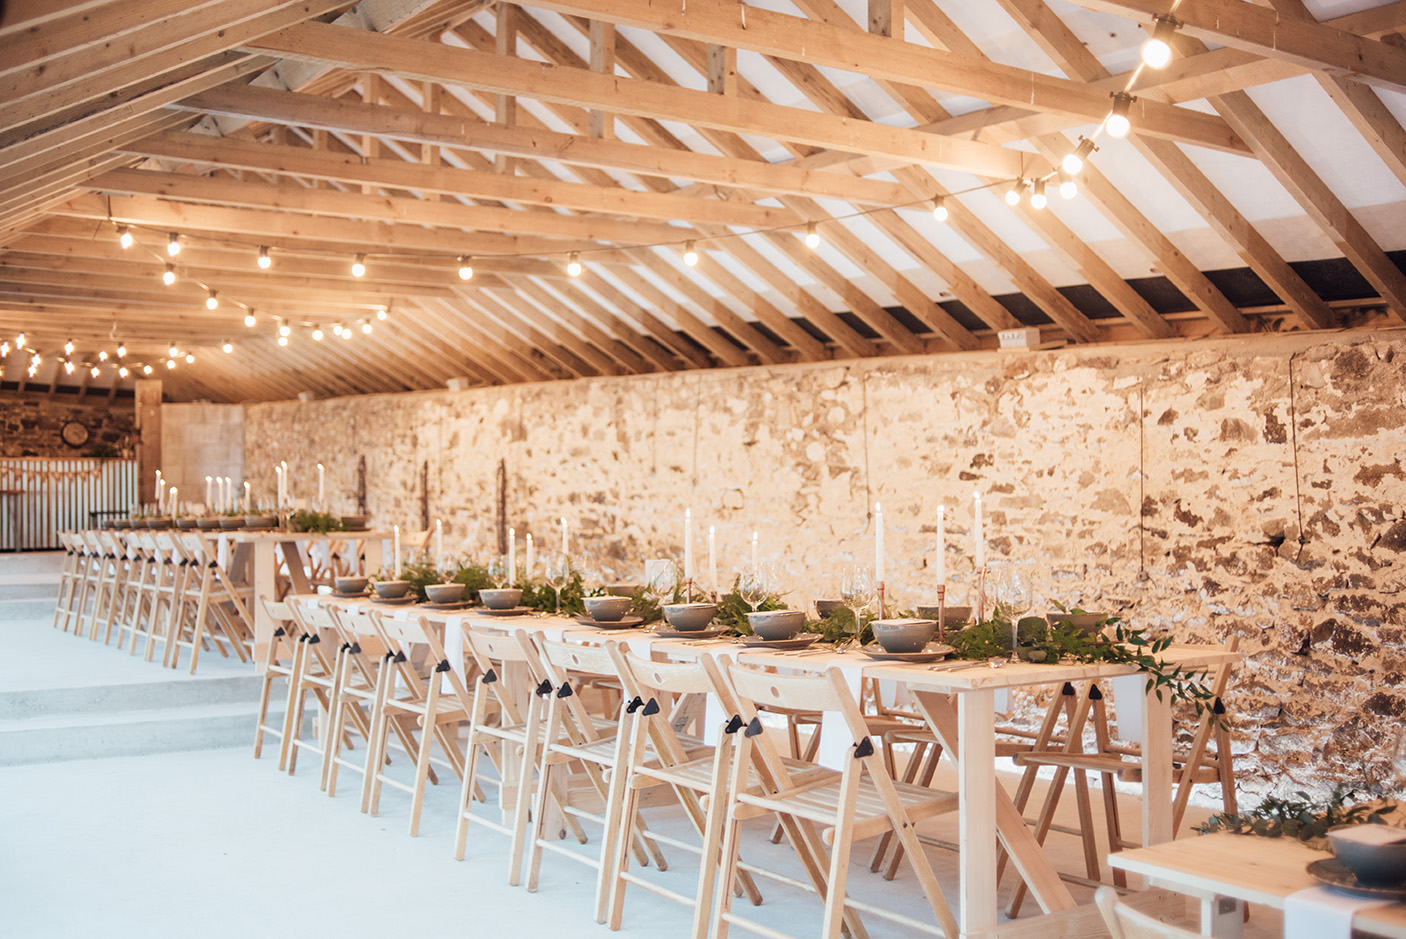 The inside of the Cowyard Barn rustic party and reception space set for an evening dinner at Pengenna Manor Cornwall wedding venue02.jpg